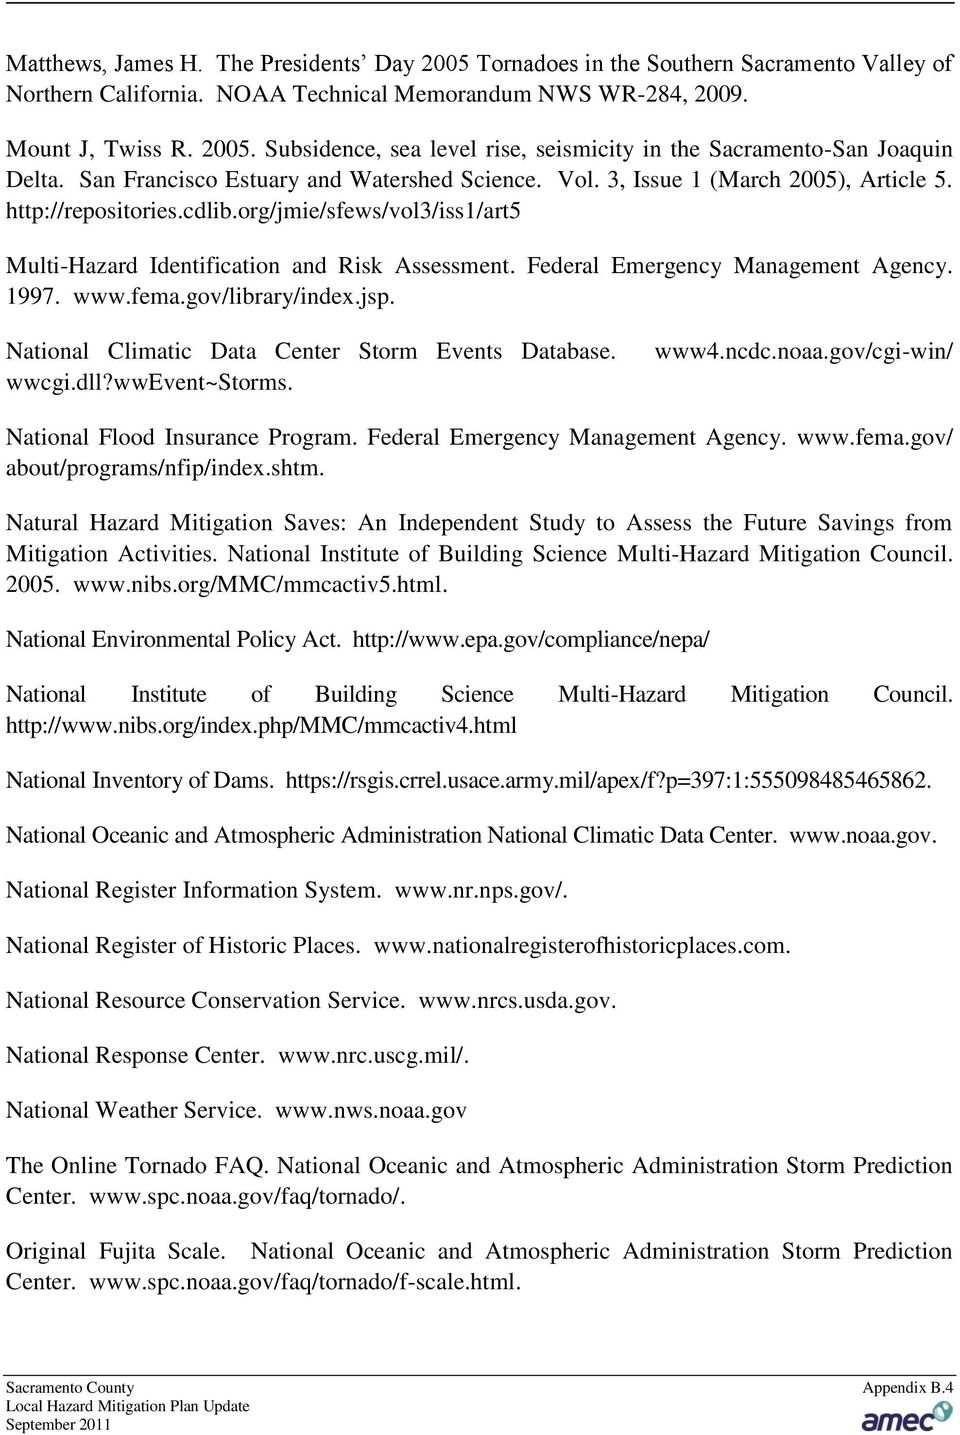 Federal Emergency Management Agency. 1997. www.fema.gov/library/index.jsp. National Climatic Data Center Storm Events Database. wwcgi.dll?wwevent~storms. www4.ncdc.noaa.